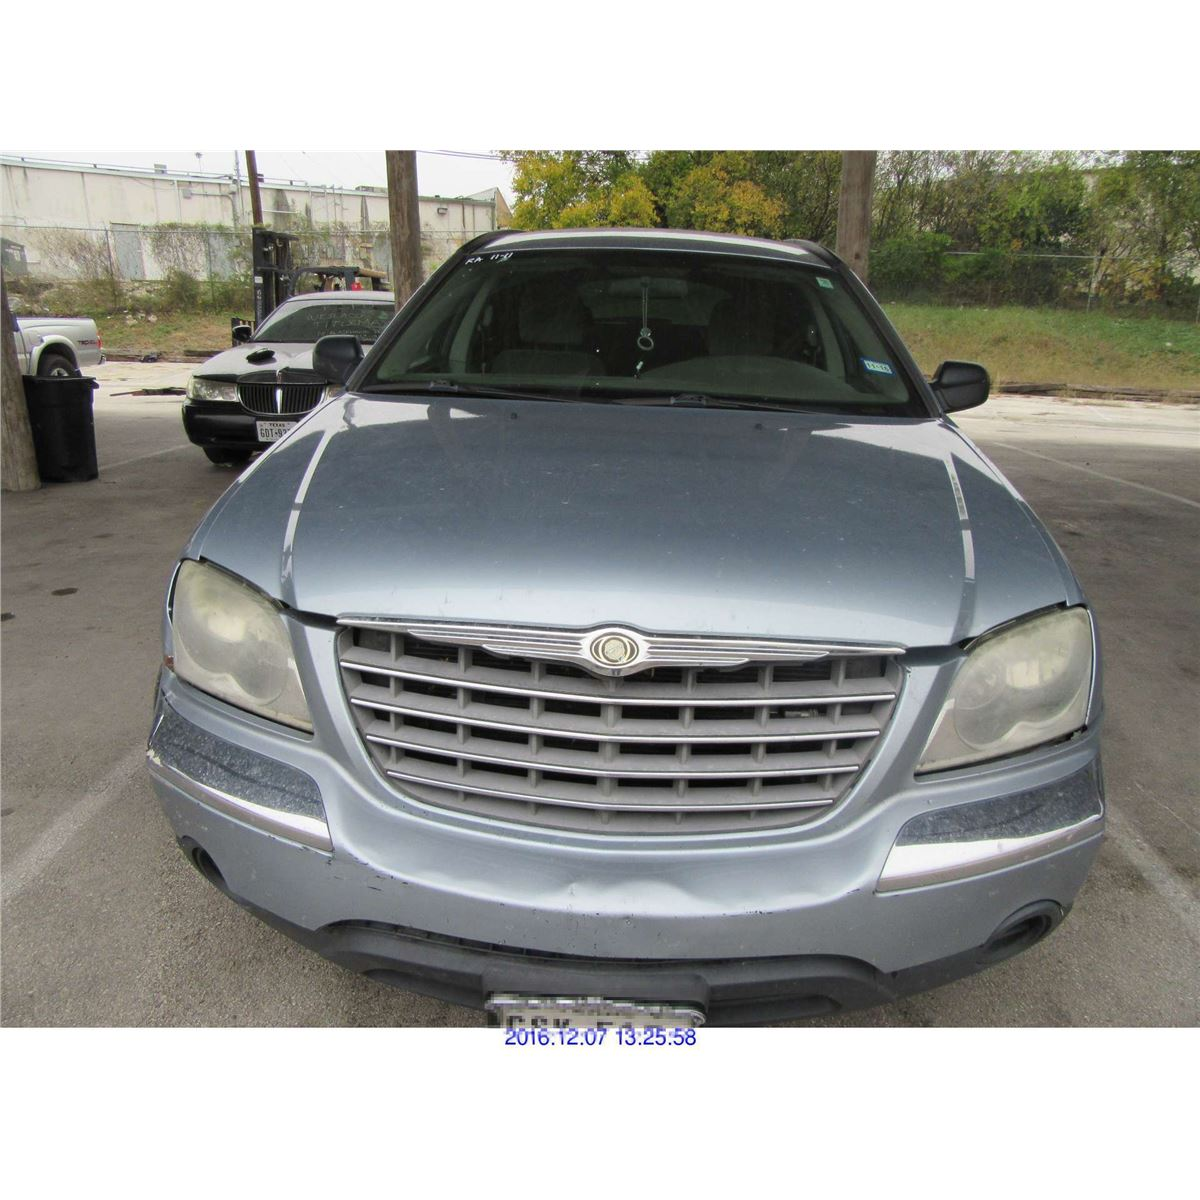 CHRYSLER PACIFICA (TITLE DELAY